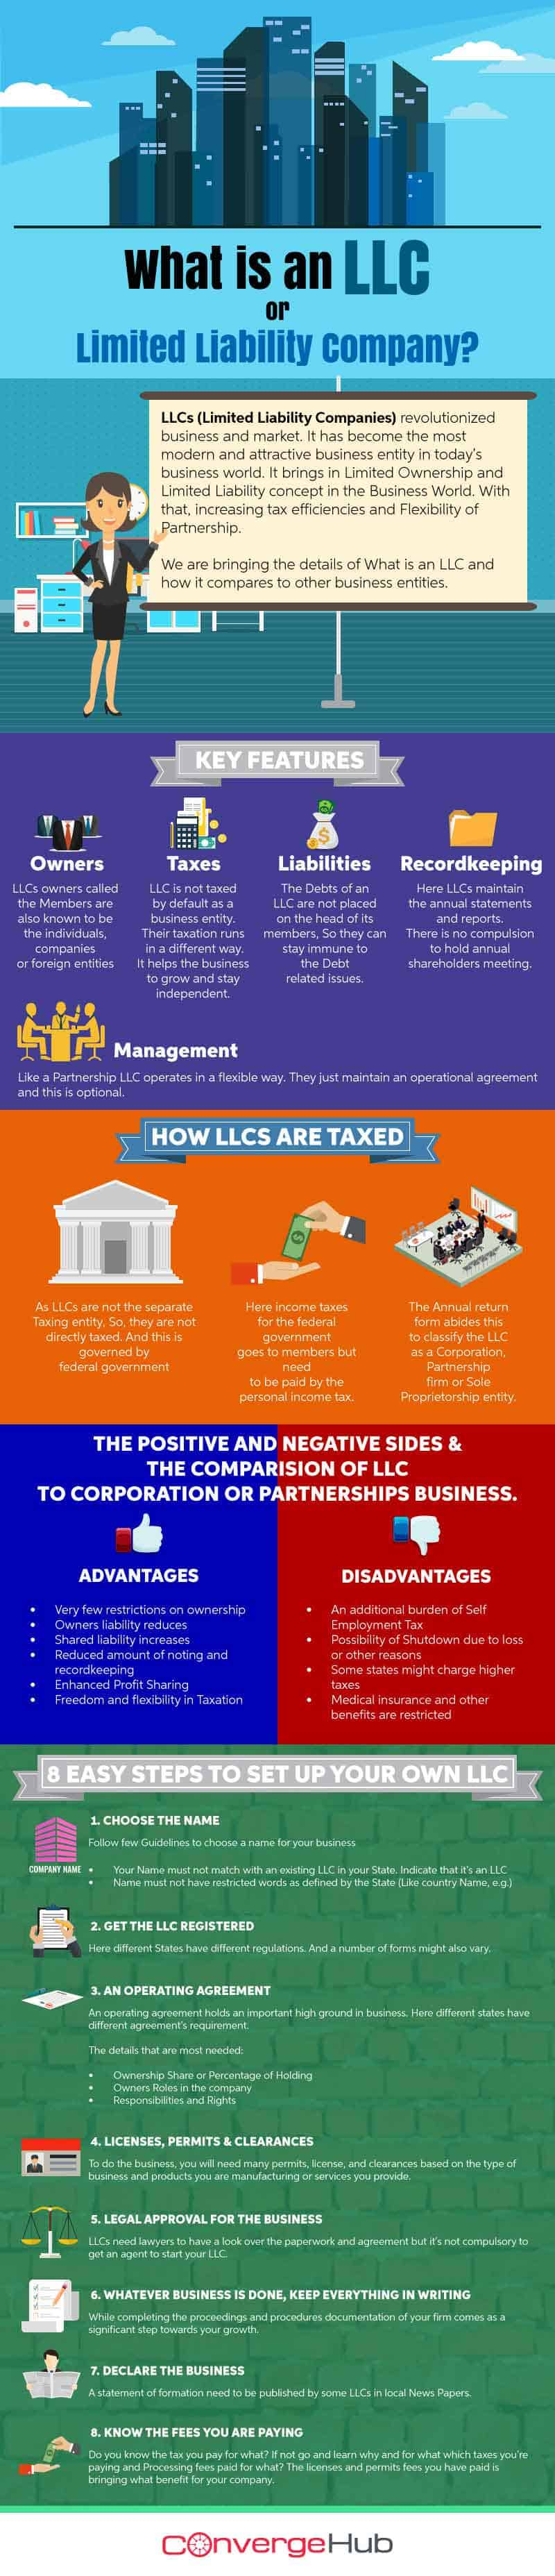 What is an LLC